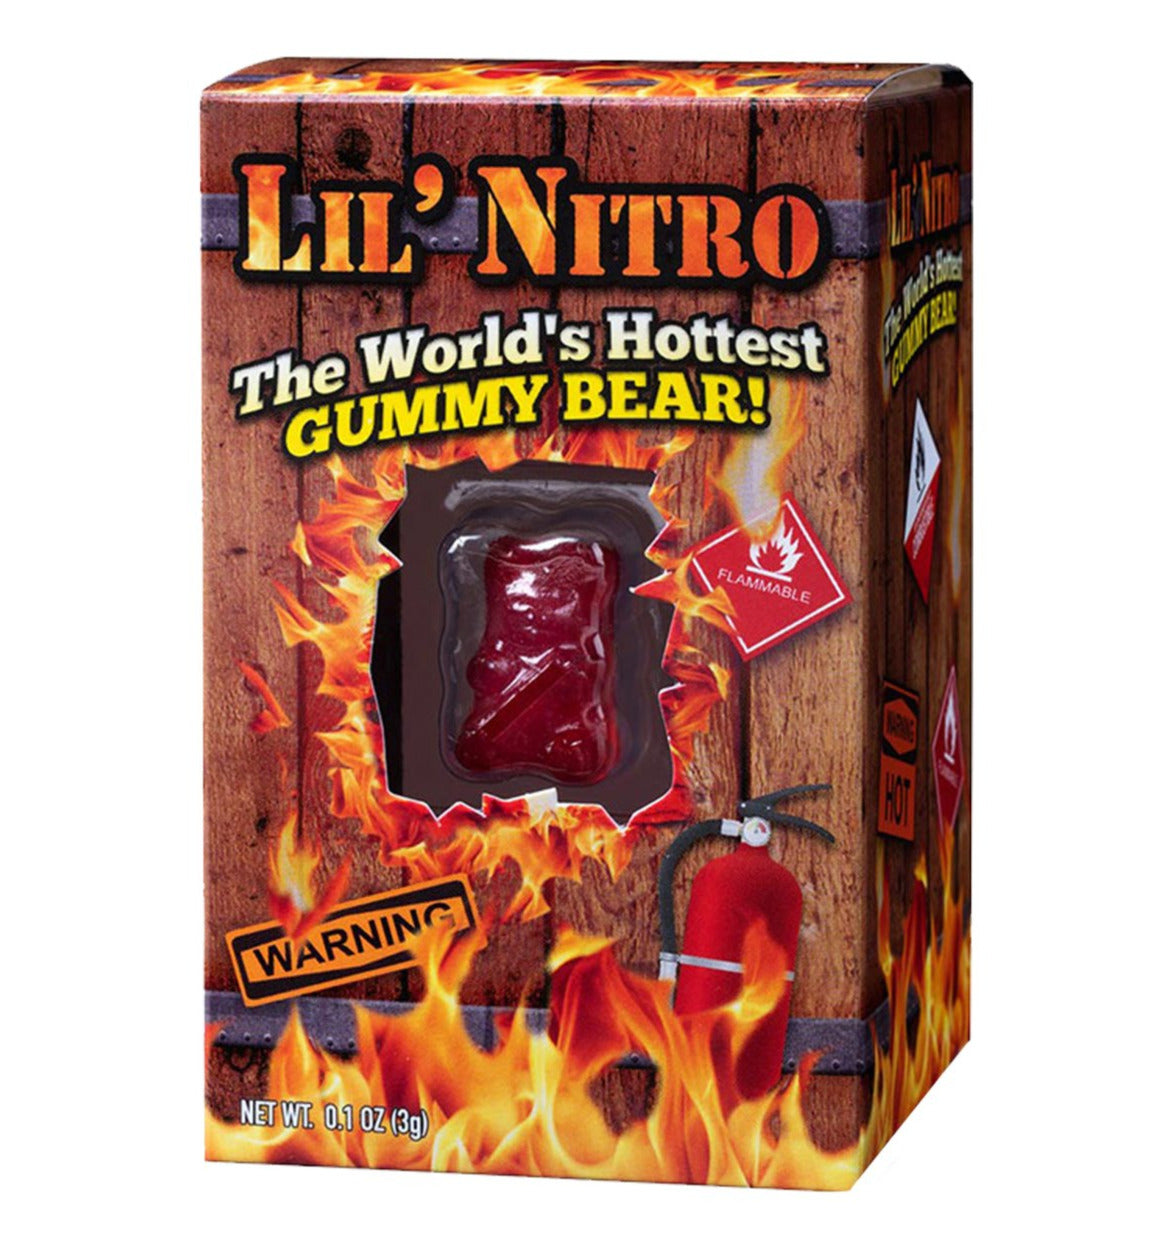 Lil Nitro - The Worlds Hottest Gummy Bear